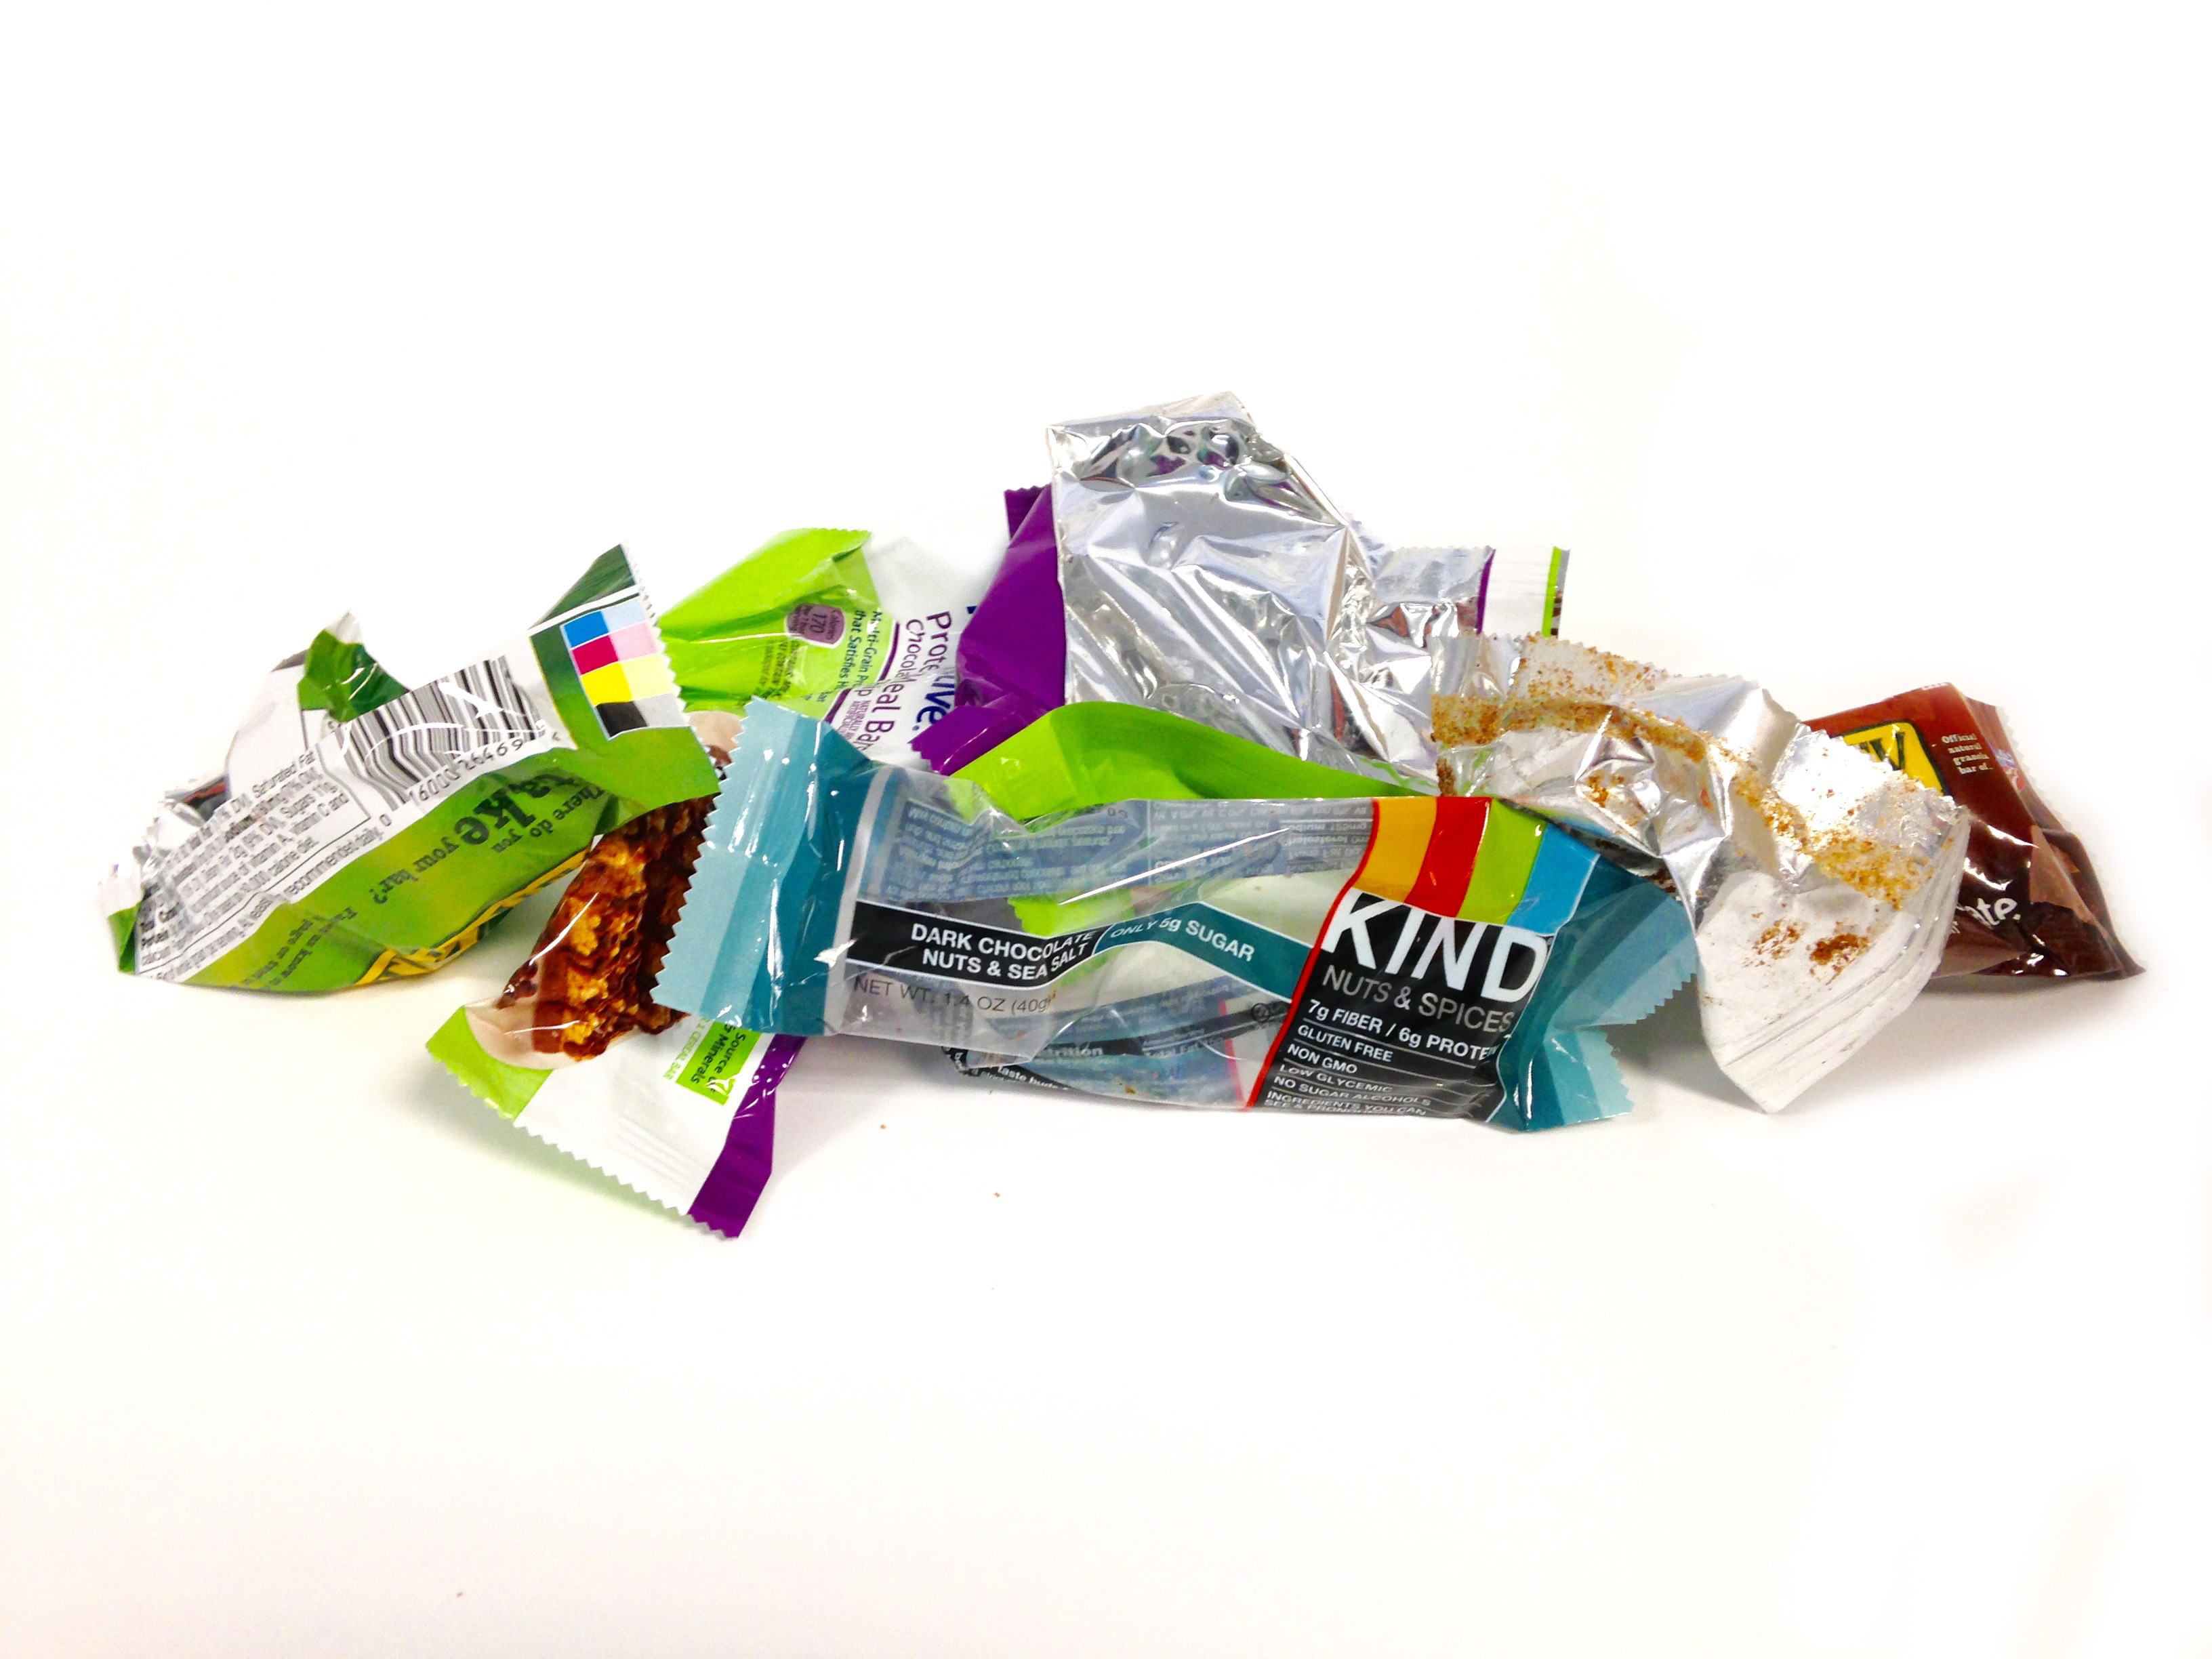 A Pile Of Granola And Energy Bar Wrappers